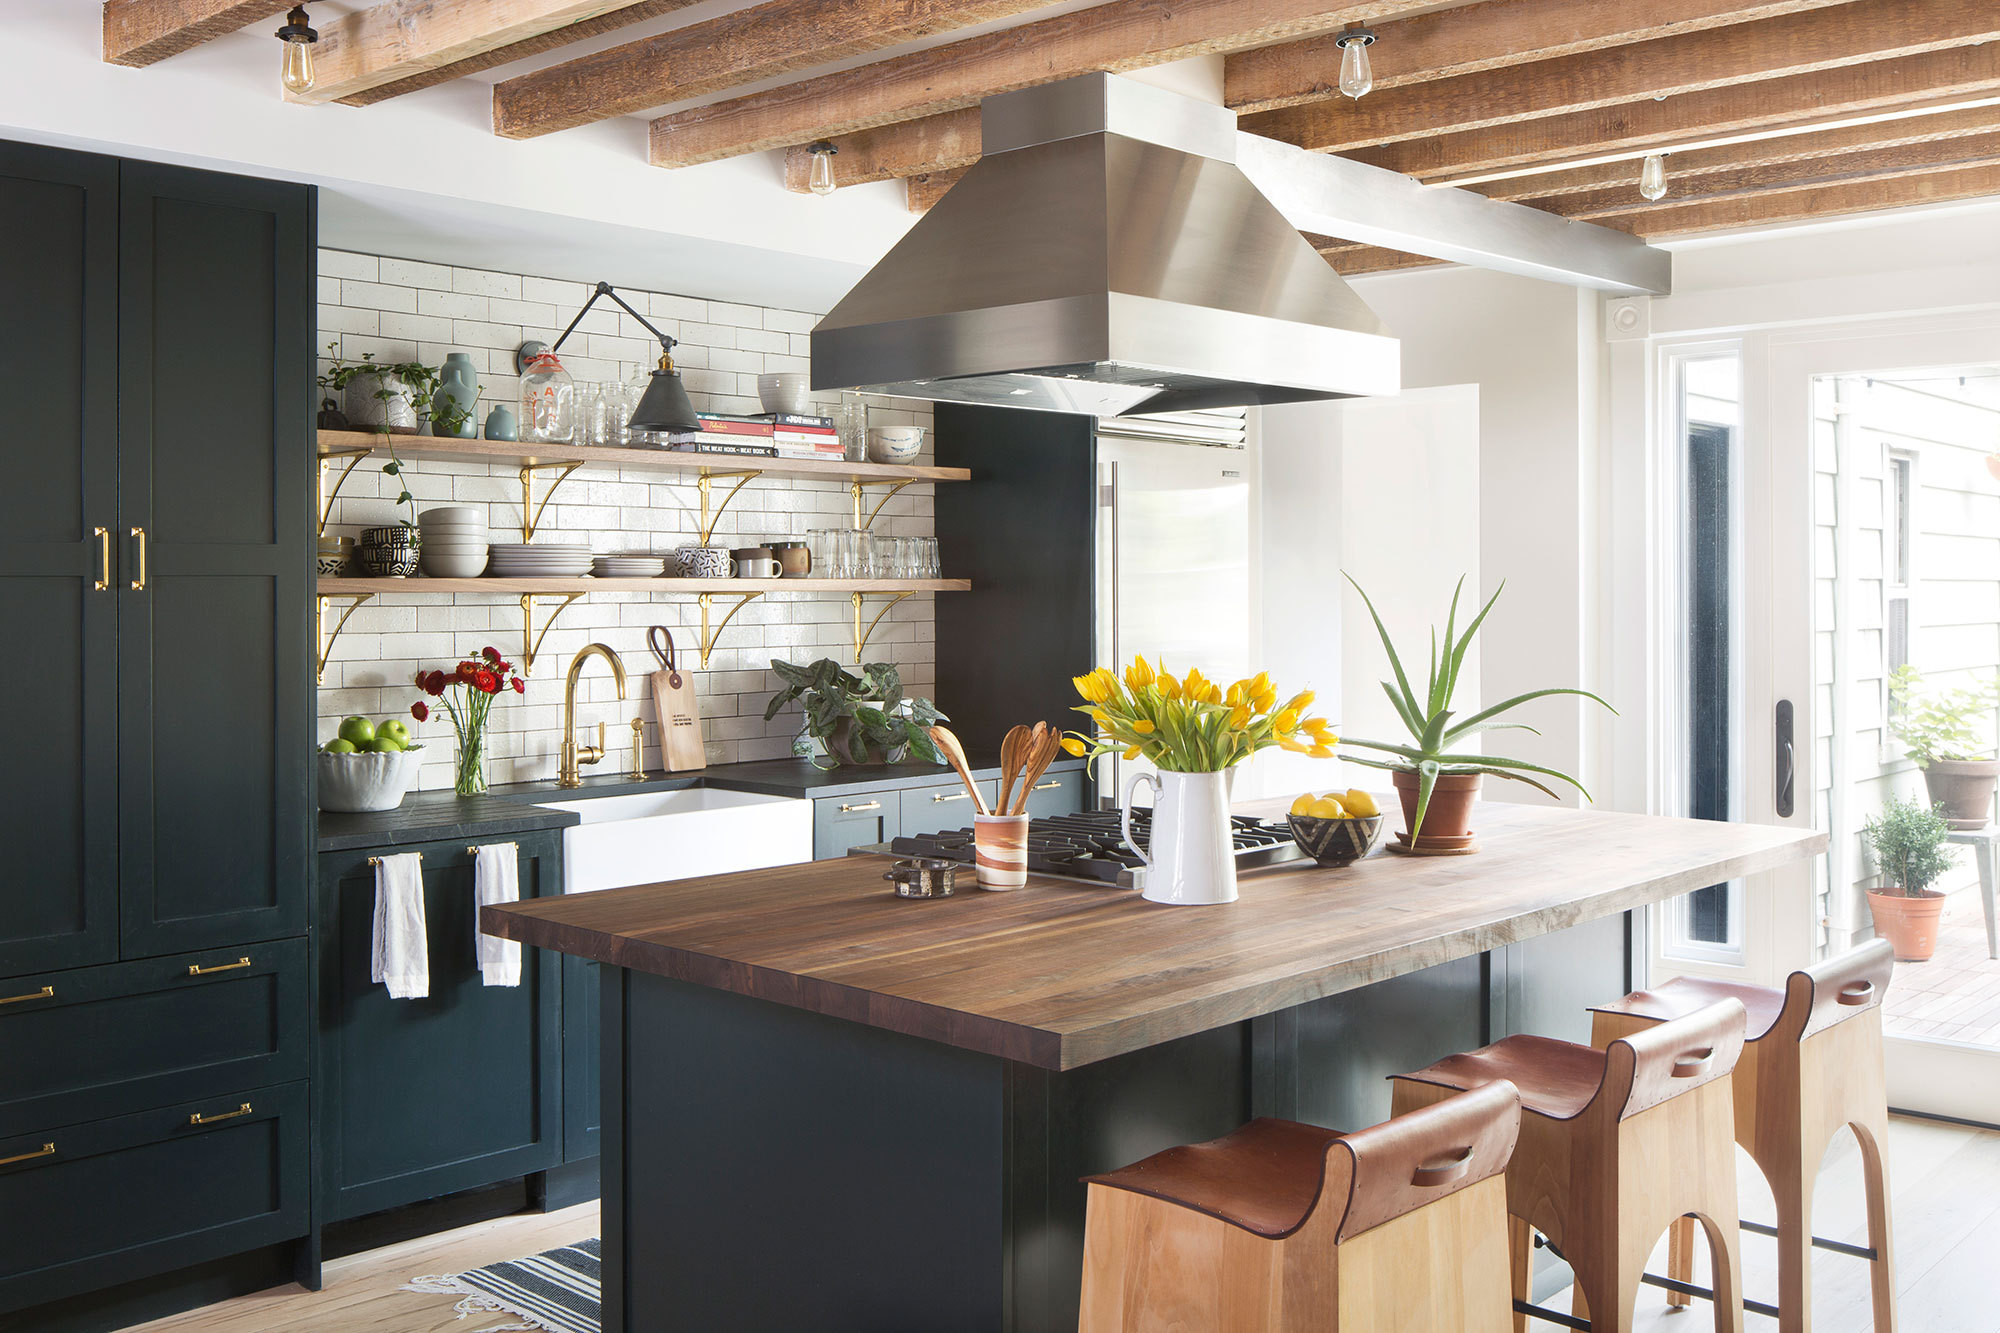 The attention to detail in this stunning open kitchen is pretty impressive. That same focus is given throughout this beautifully renovated Brooklyn townhouse, so if you love the brass hardware, ceiling beams and handsome leather straps on these unique counter stools - you'll want to check out the rest of this home.   Source:   Lonny